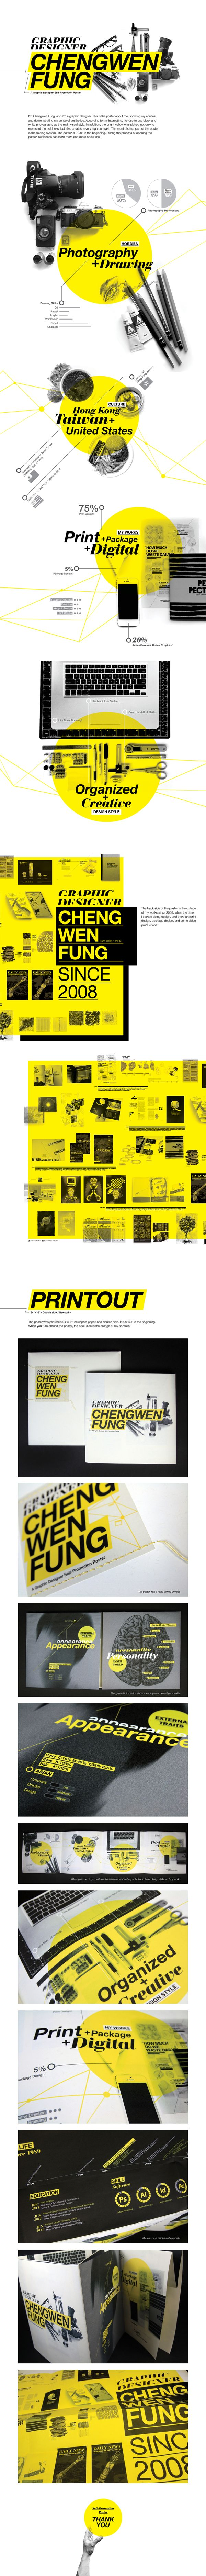 Self-Promotion poster by CHENGWEN fung, via Behance